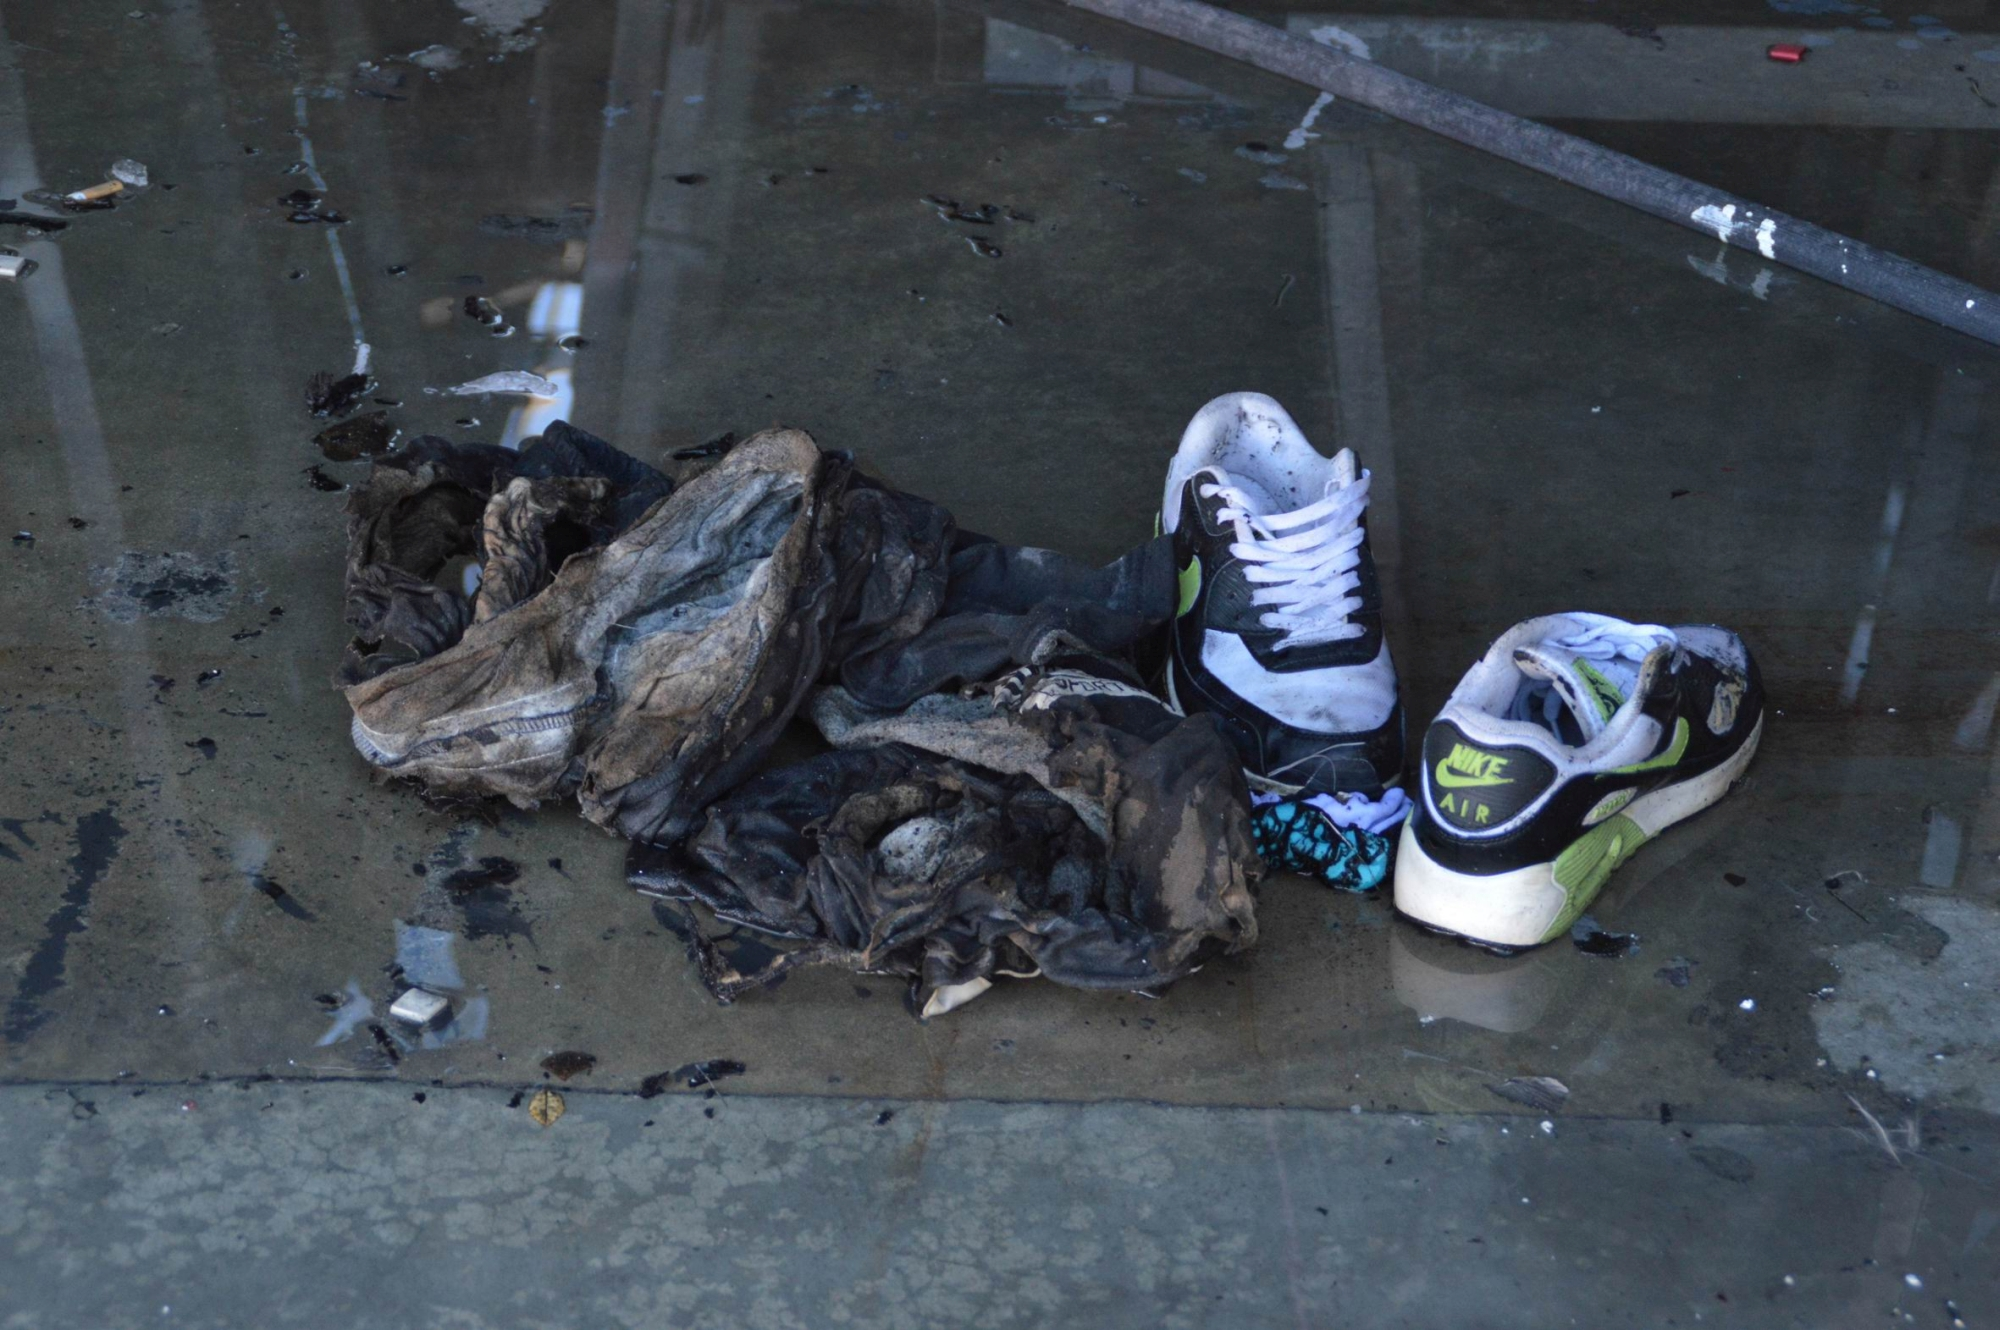 The 33-year-old Balga man's shoes and clothes after the accident. Pictures: Imogen Williams